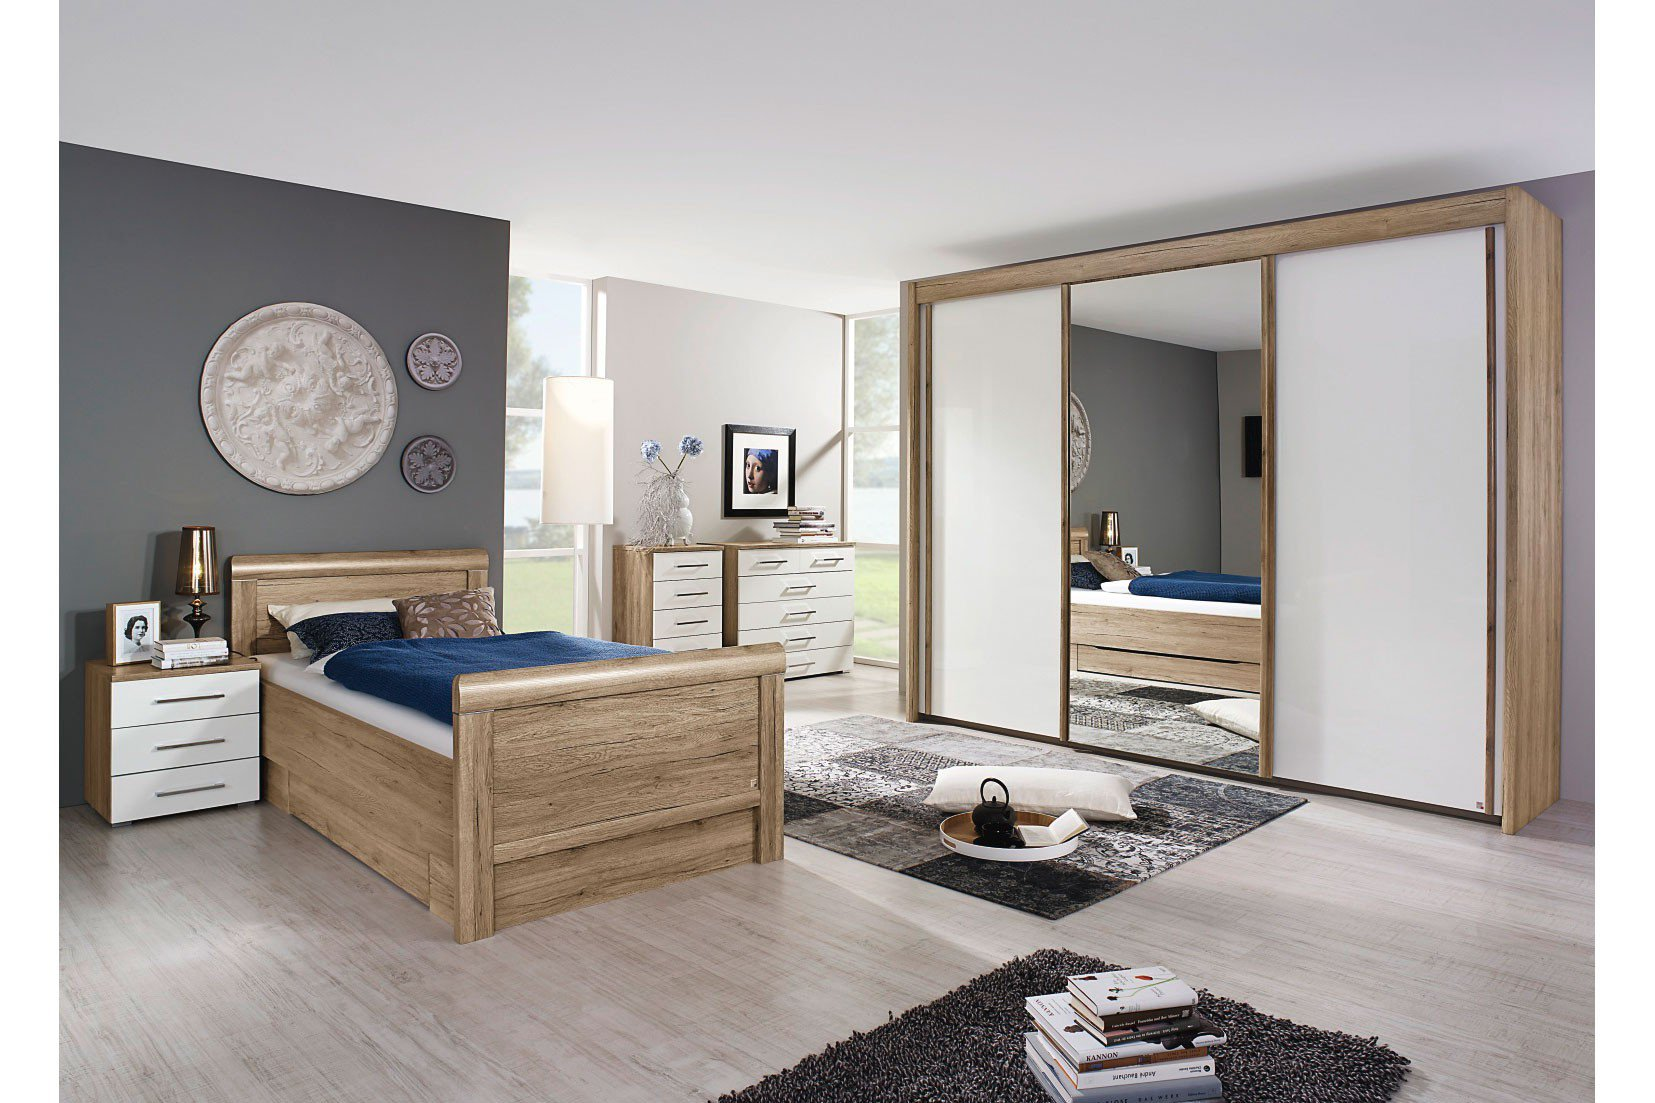 rauch solo komfortbett mit schubkasten eiche m bel letz ihr online shop. Black Bedroom Furniture Sets. Home Design Ideas